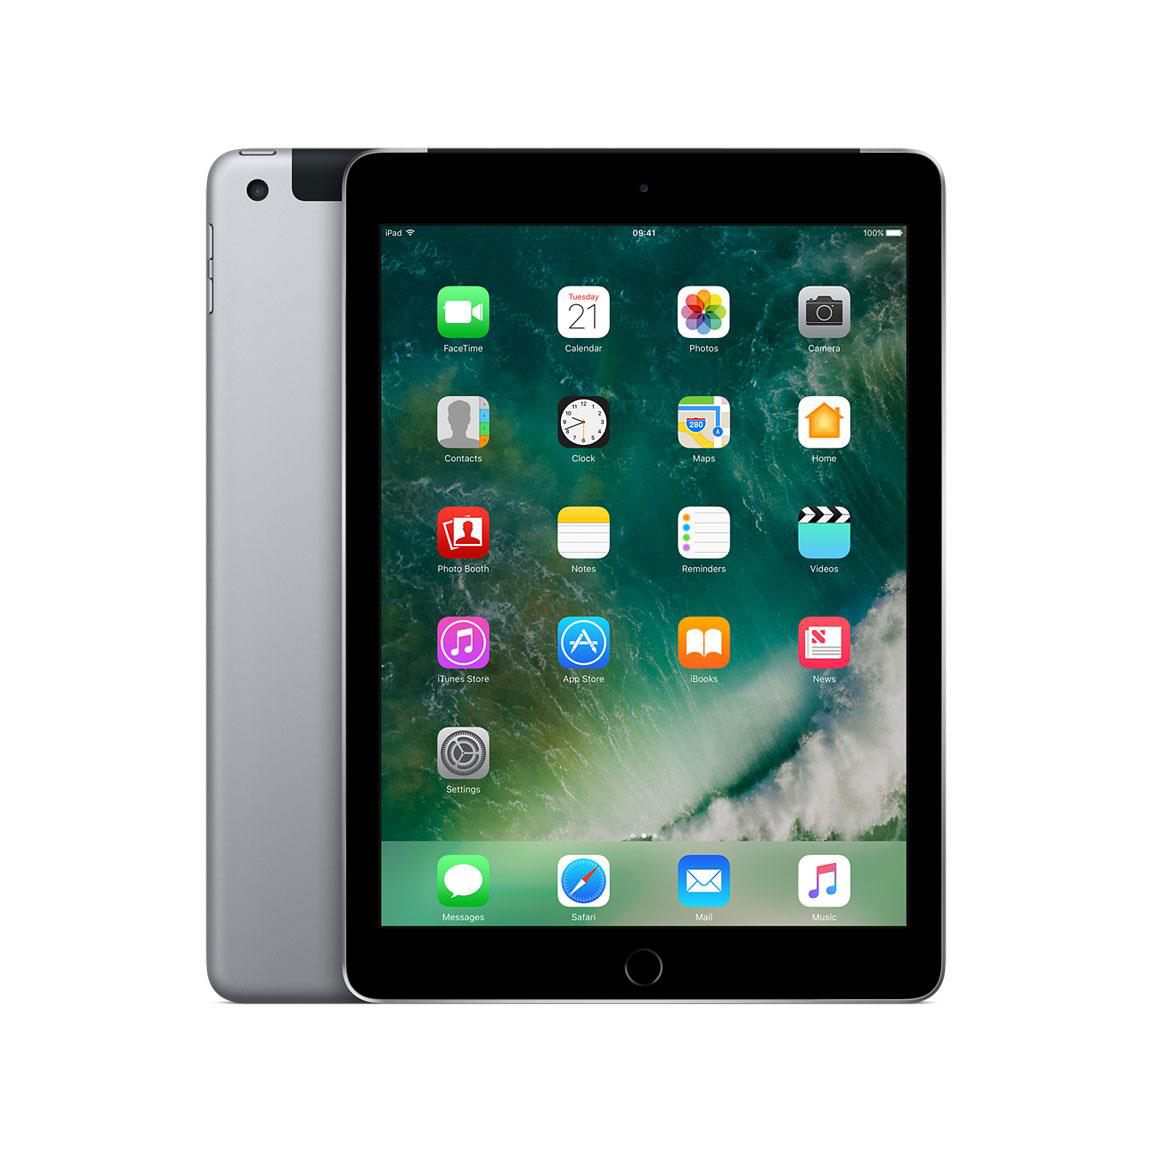 Apple iPad Cellular Wi-Fi 128GB 8Mp Camera 9.7inch Touch ID Finger Sensor Space Grey Ref MP2D2B/A